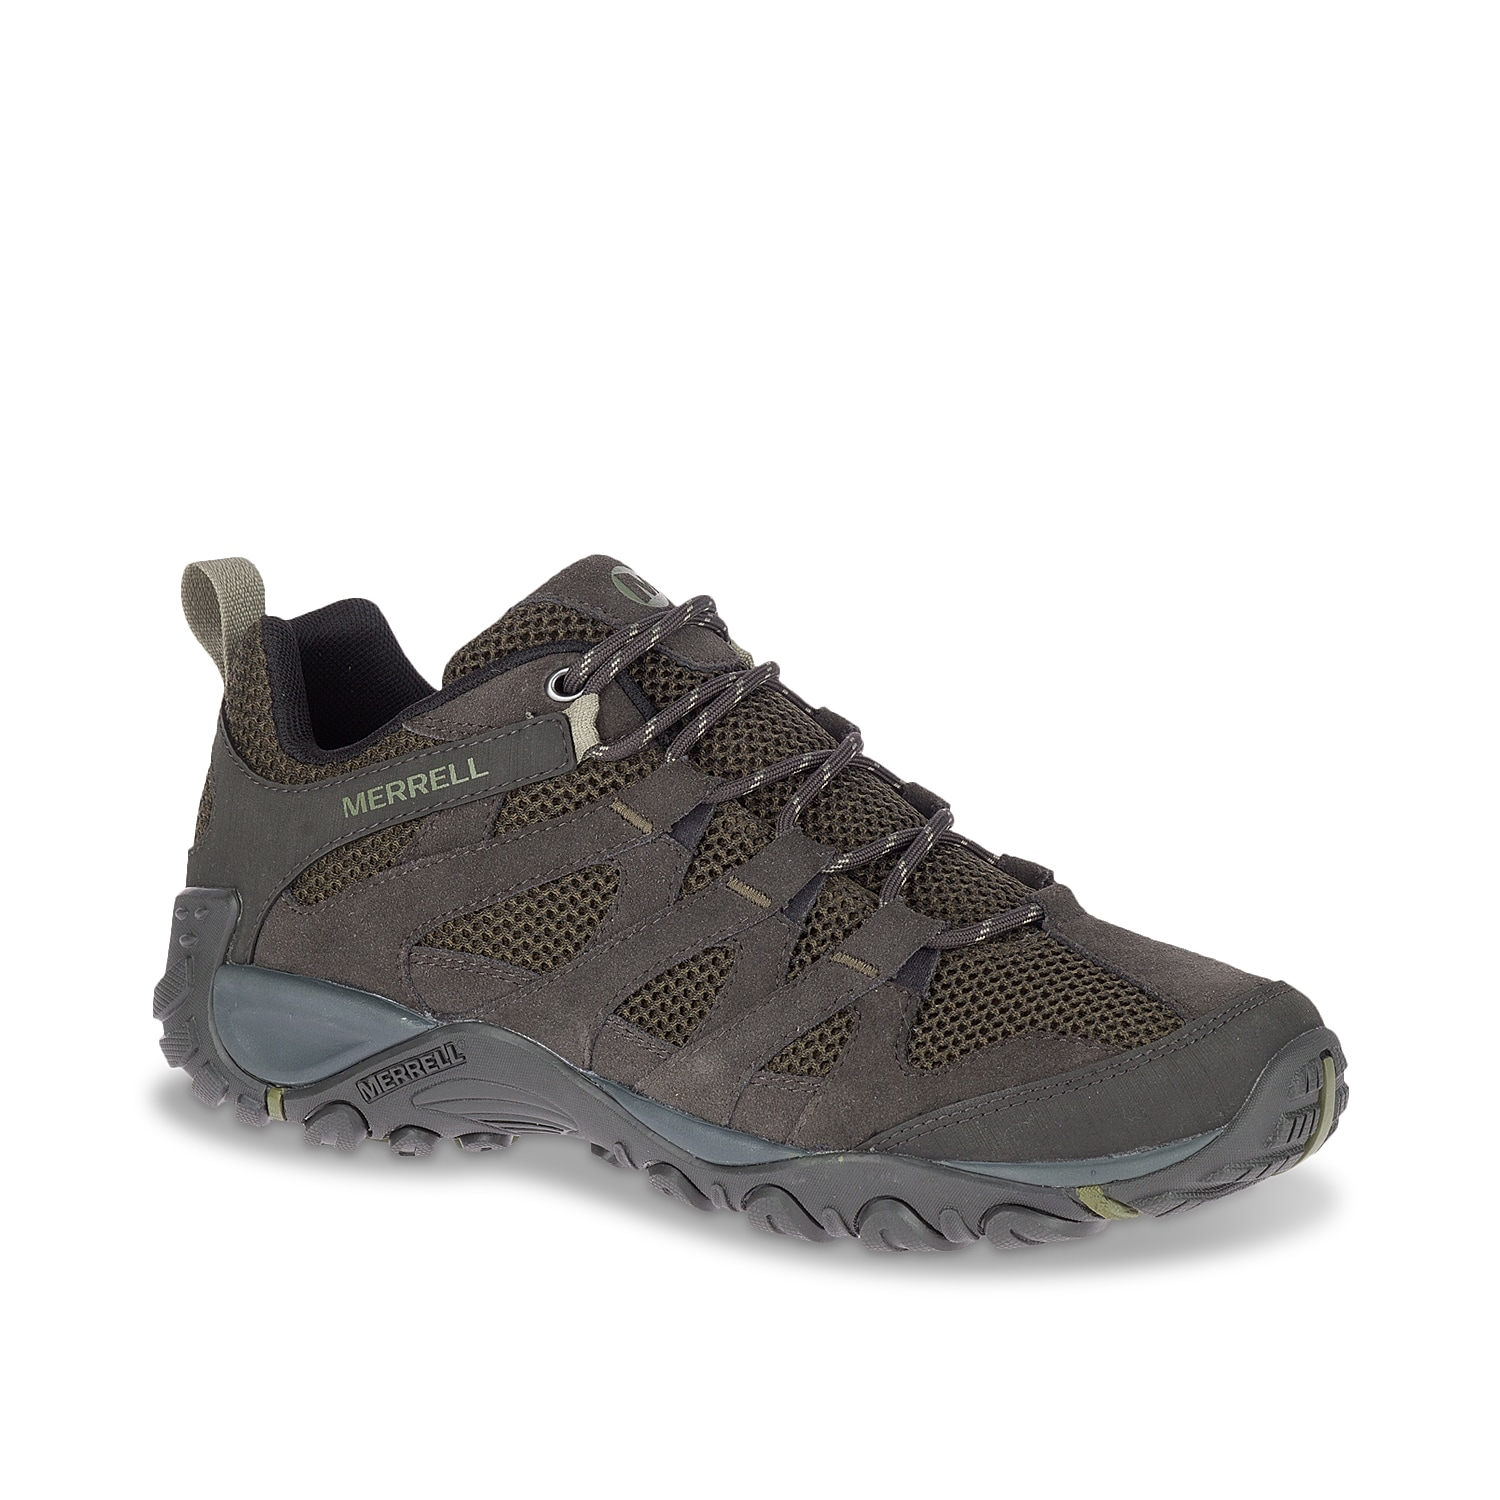 Stay supported during your daily hikes when wearing the Alverstone trail shoe from Merrell. This men\\\'s low-top is built to provide all-day comfort and foot protection with the air cushion in the heel!